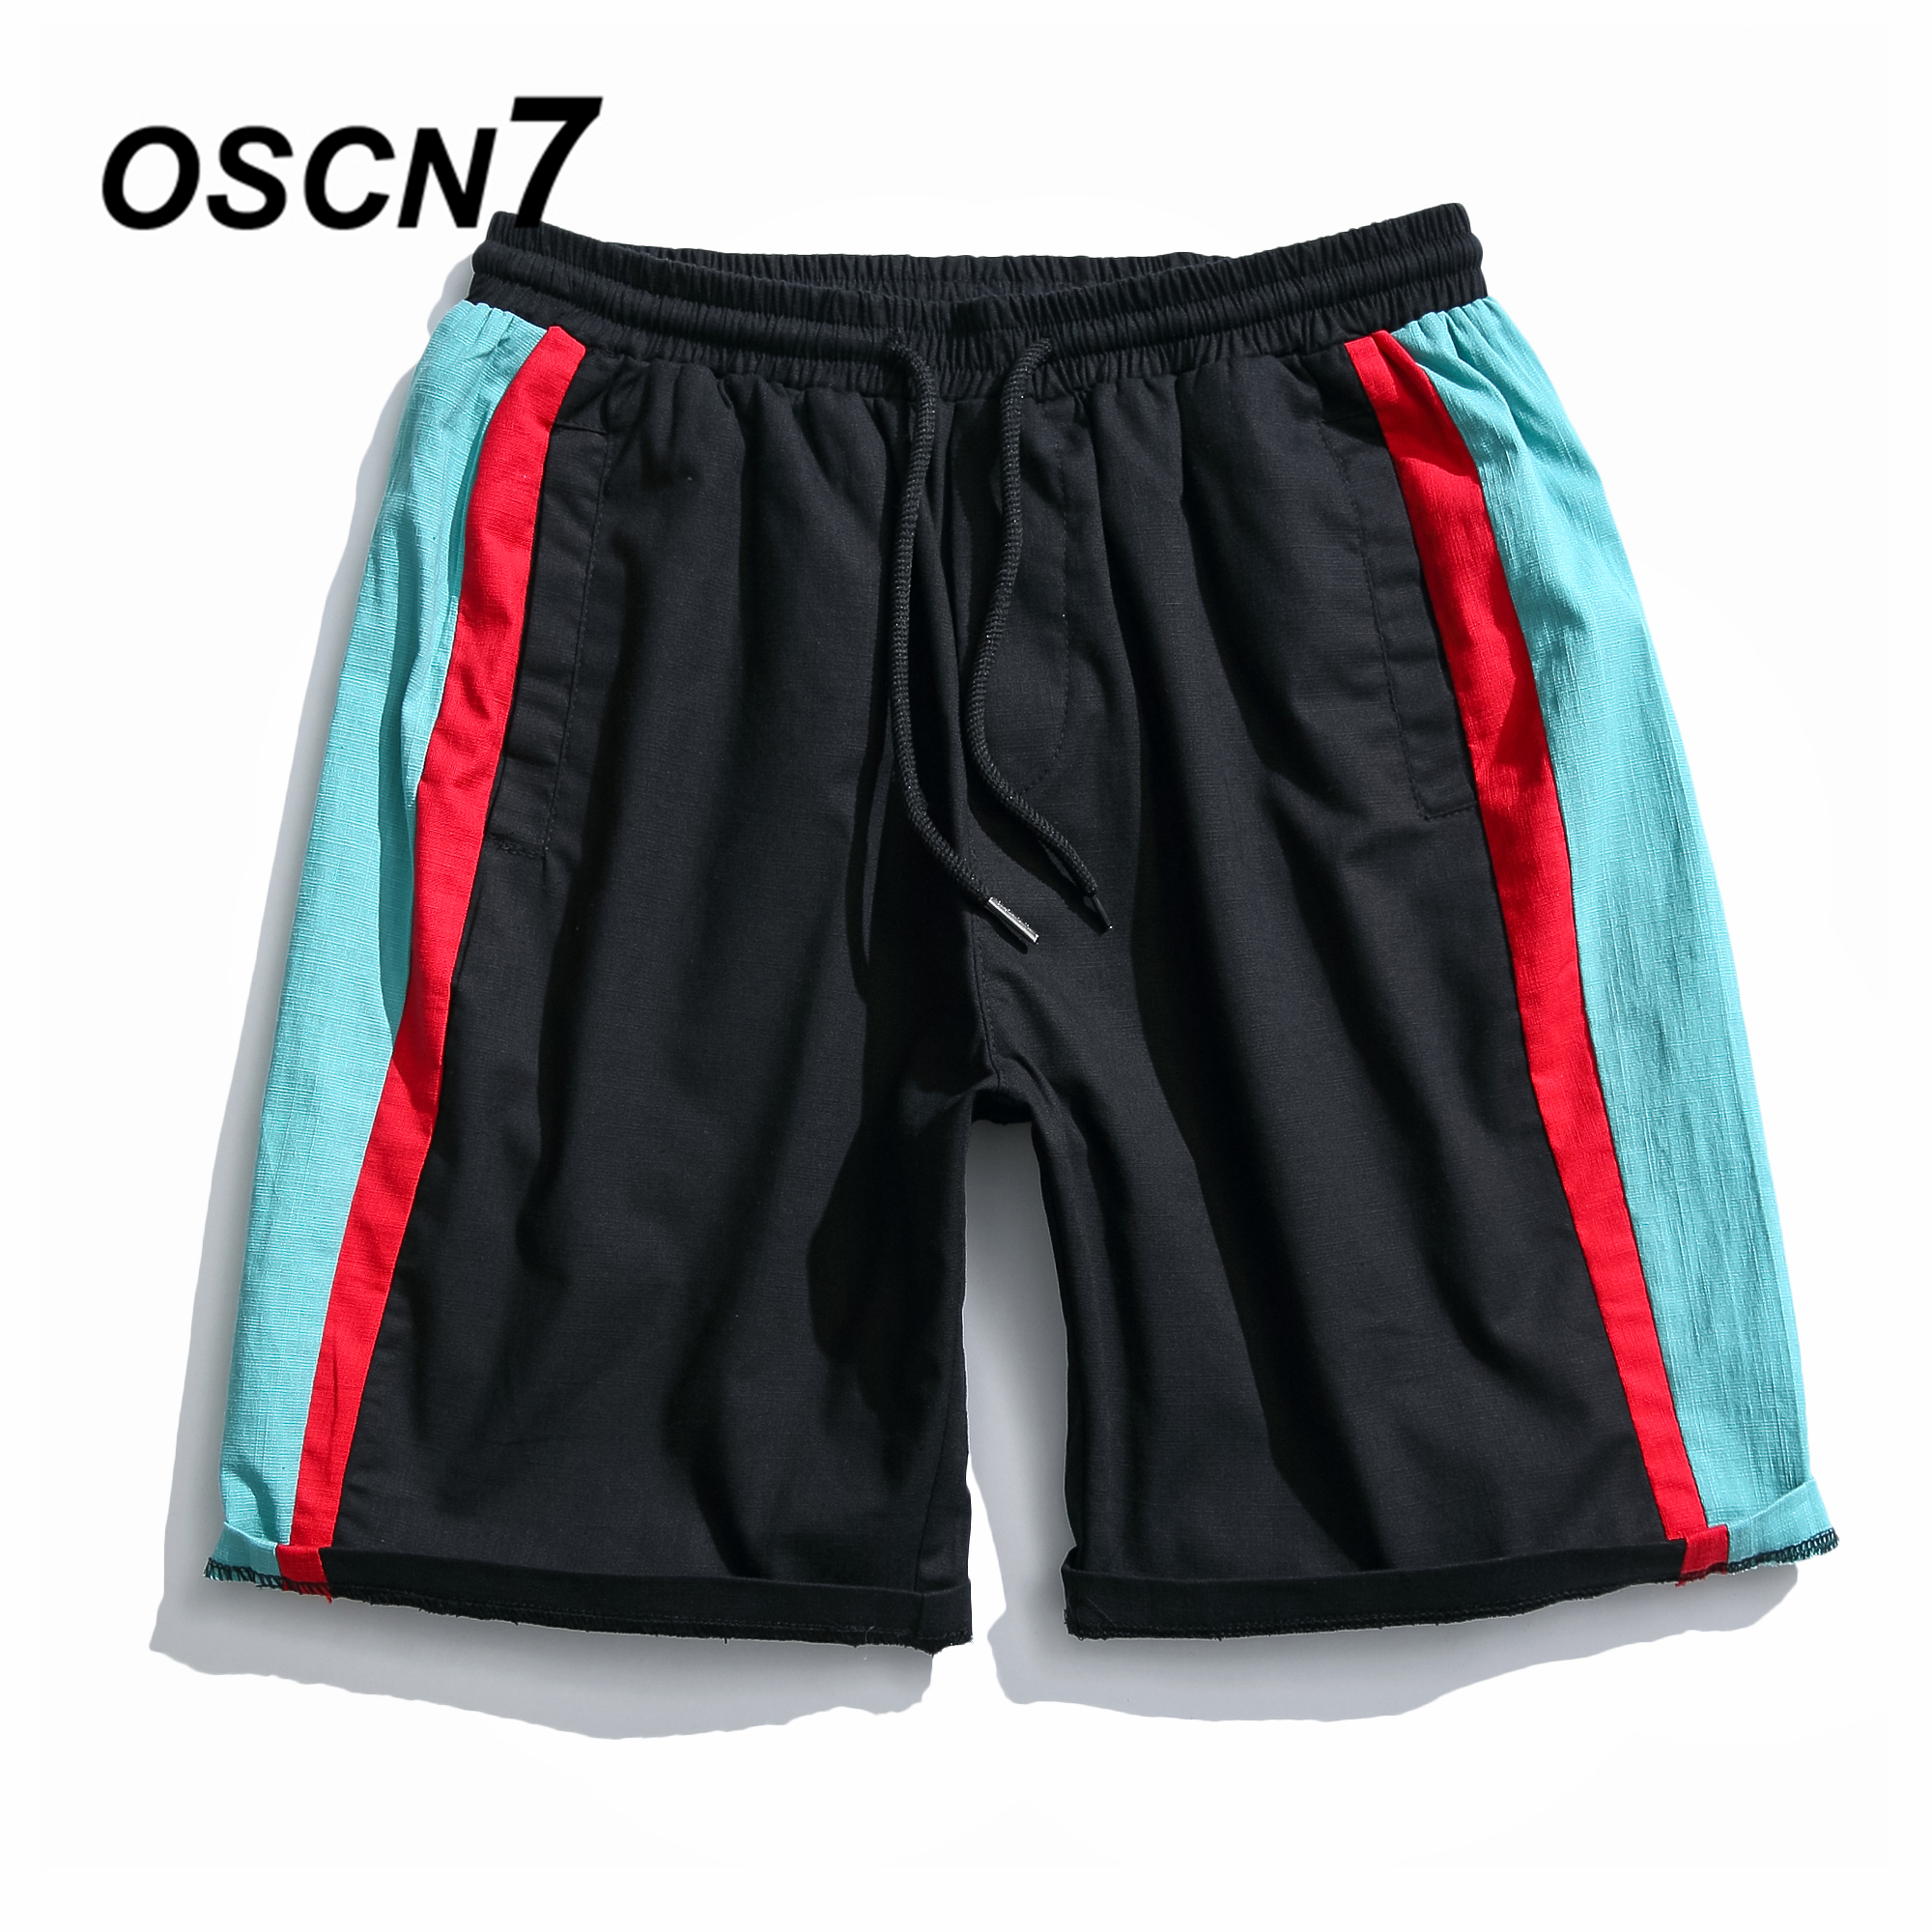 OSCN7 Harajuku Shorts Men Plus Size Casual Summer 2018 New Short Pants Leisure Mens Shorts K8172